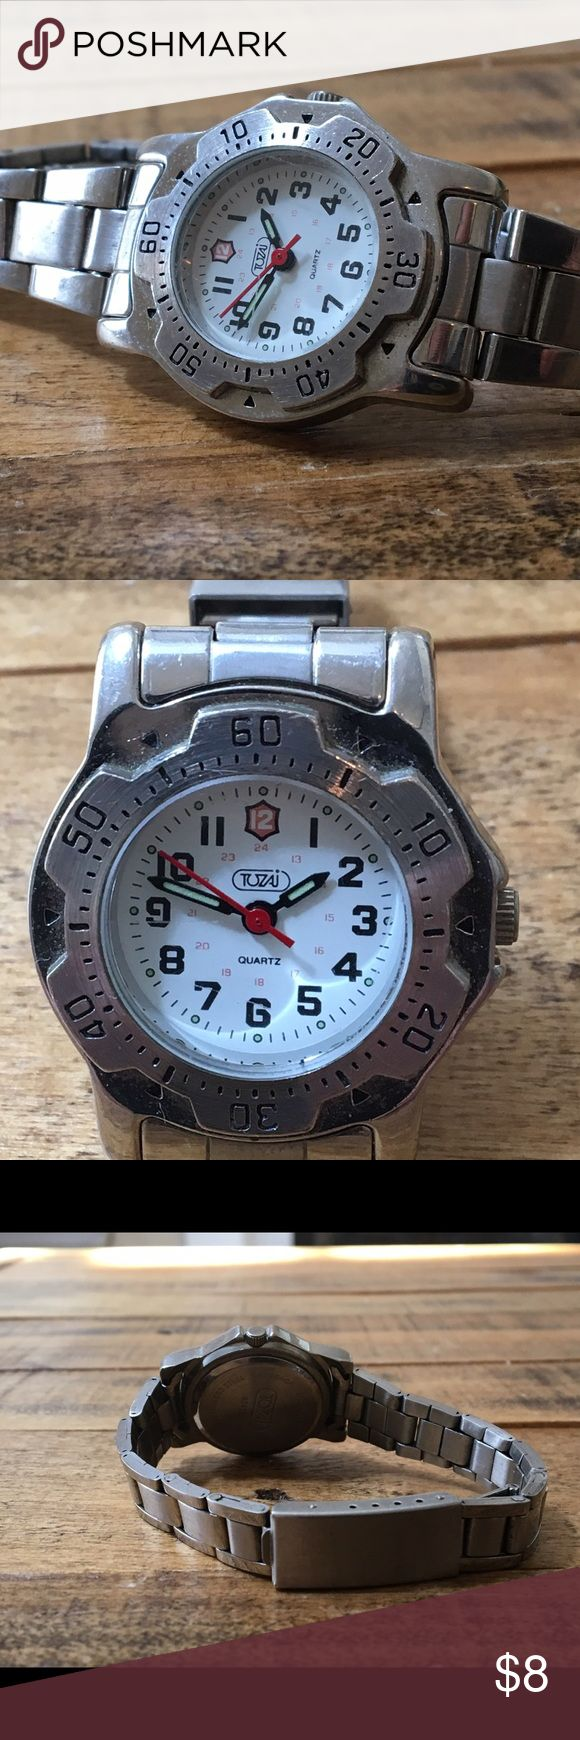 Ladies dive style watch This lady's dive style watch by Tozaj is a great accessory for the beach, and long summer days. Shows some minor desk wear and scratching on the stainless steel portions of the watch, but is in otherwise excellent condition. Works perfectly and comes with a new battery installed. Accessories Watches